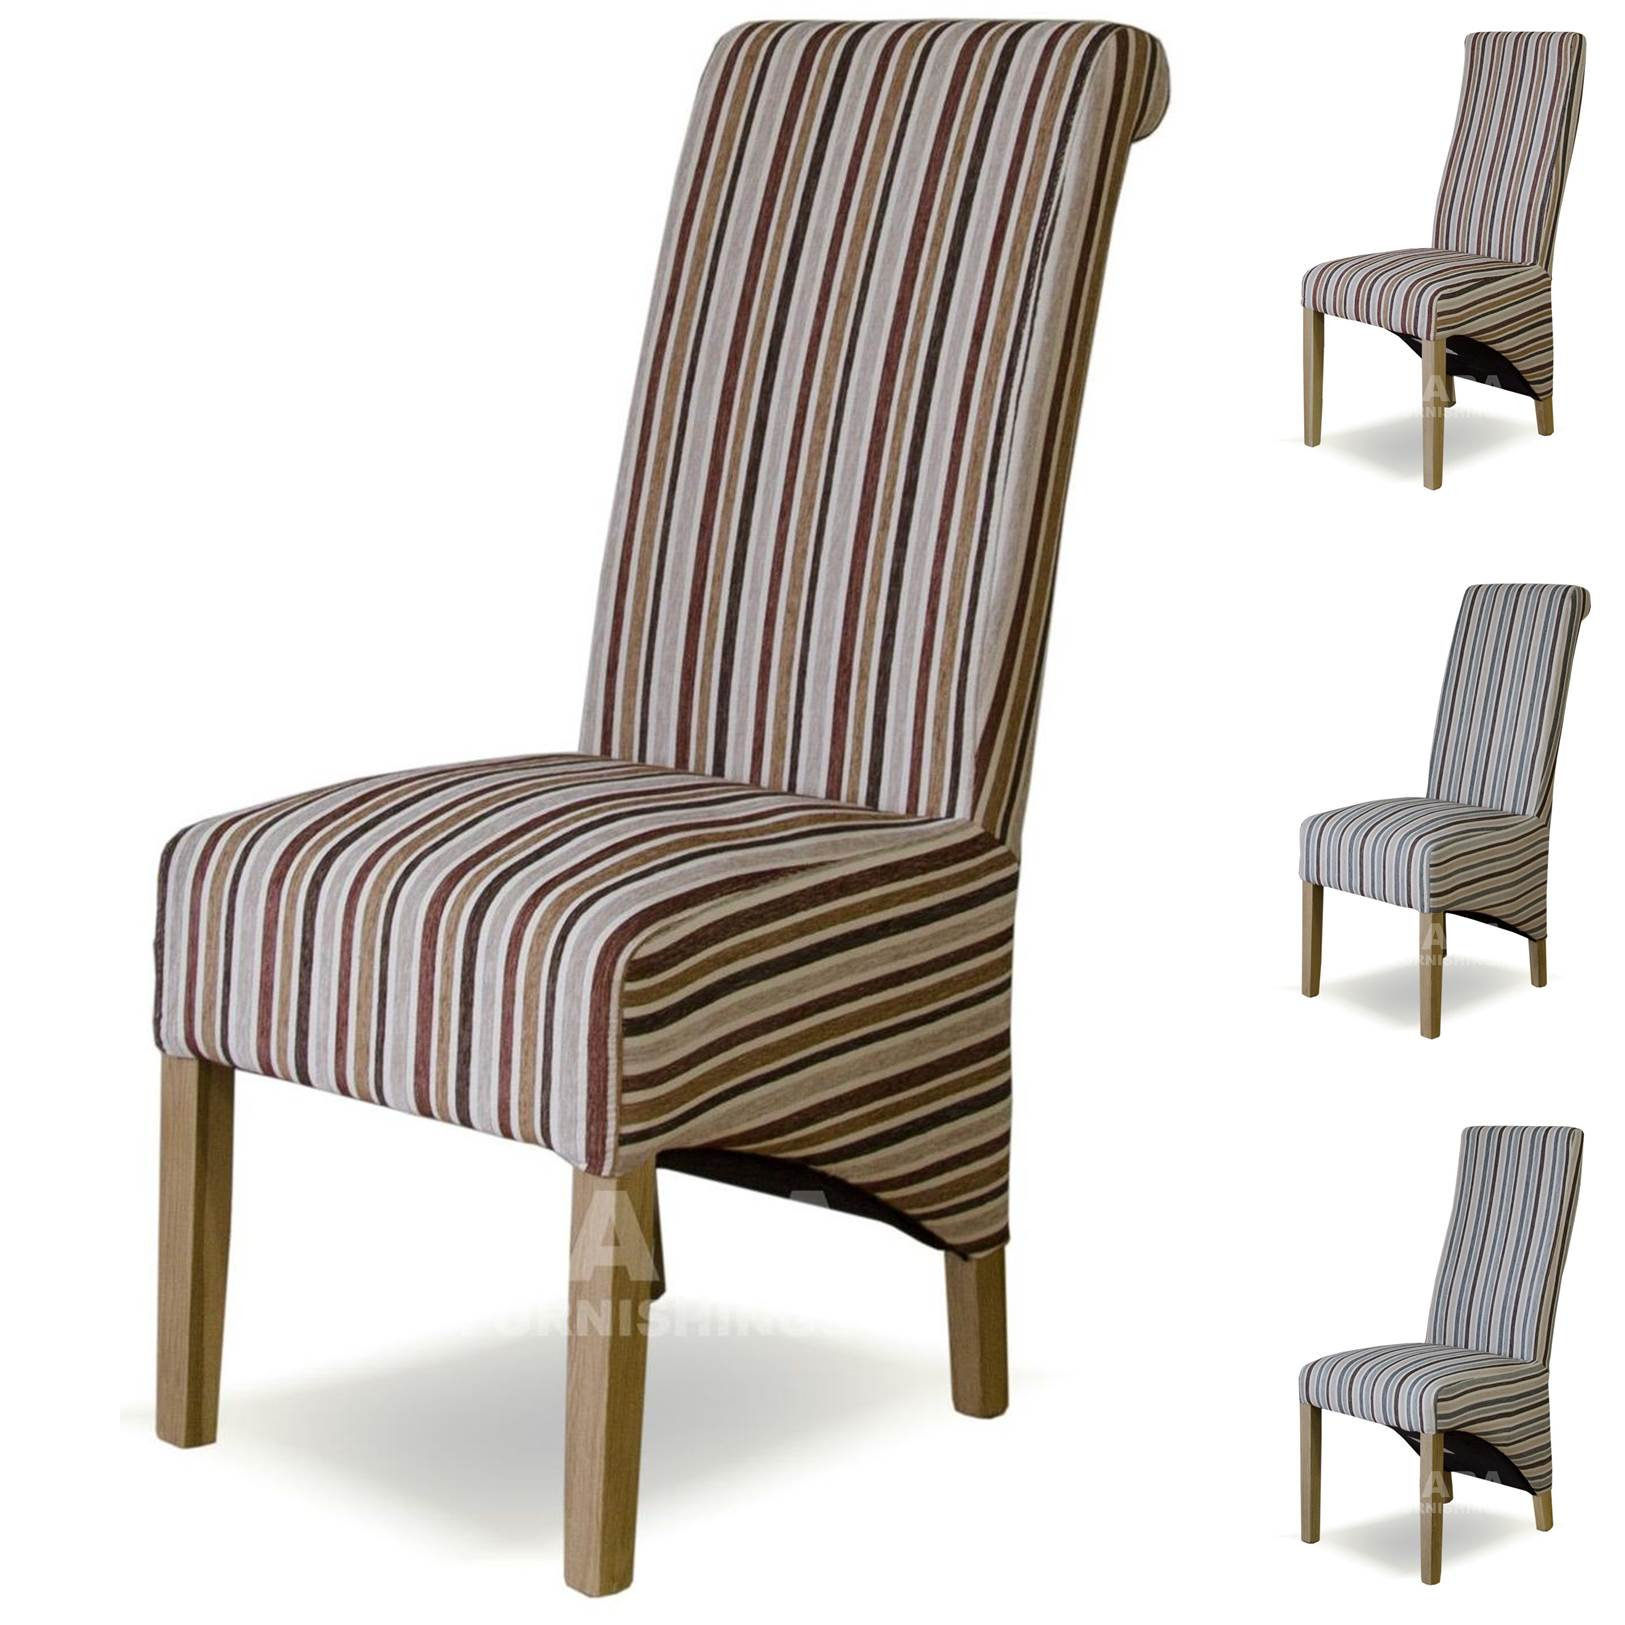 Plum striped dining chairs home decor for Striped upholstered dining chairs